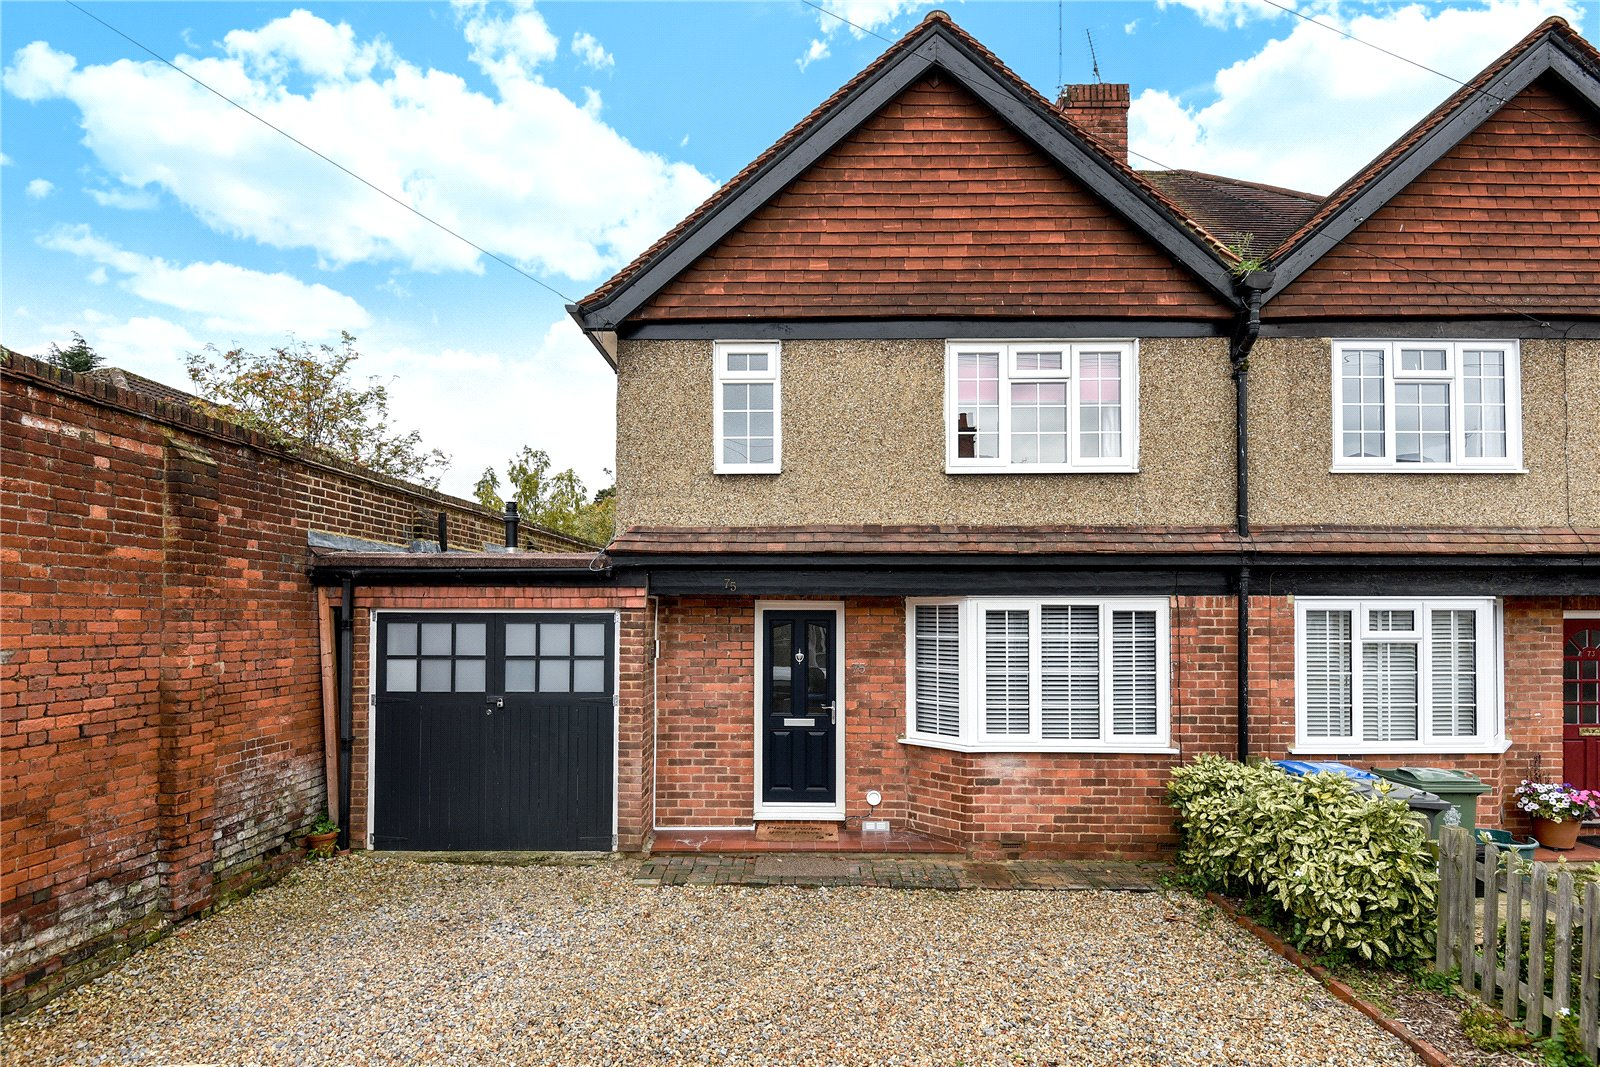 3 Bedrooms Semi Detached House for sale in Portlock Road, Maidenhead, Berkshire, SL6